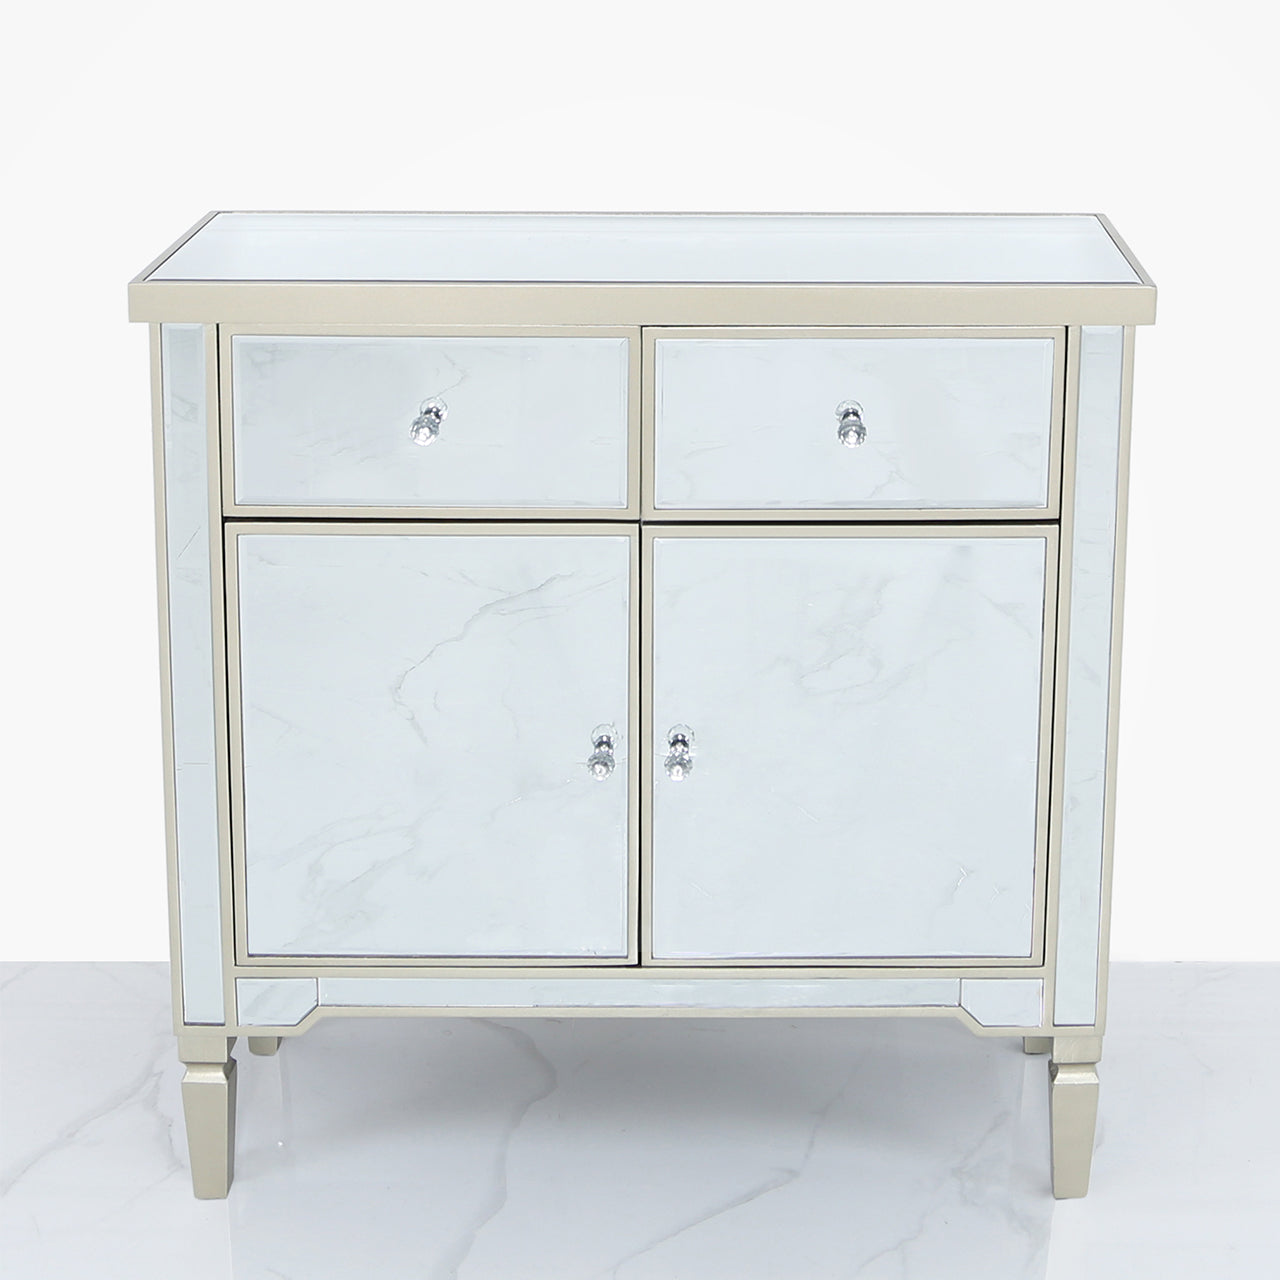 Tiffany Champagne 2 Drawer 2 Door Cabinet